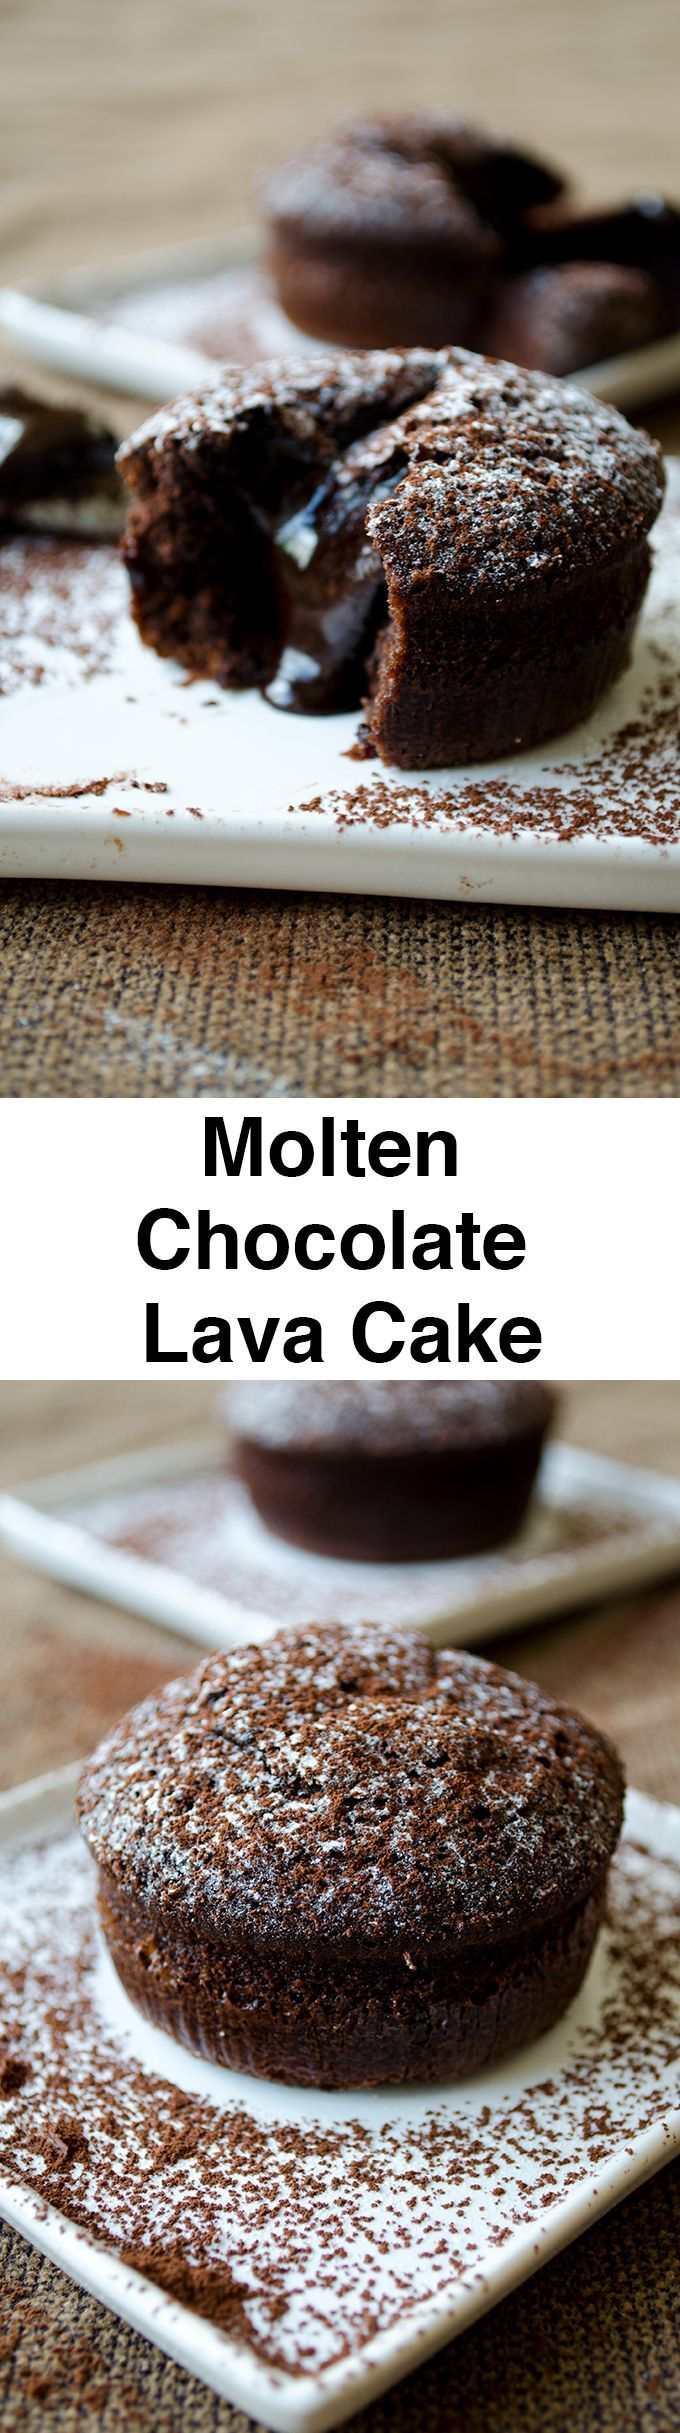 Molten Chocolate Lava Cake. Rich, chocolaty and ooey gooey. Ready within 30 minutes!